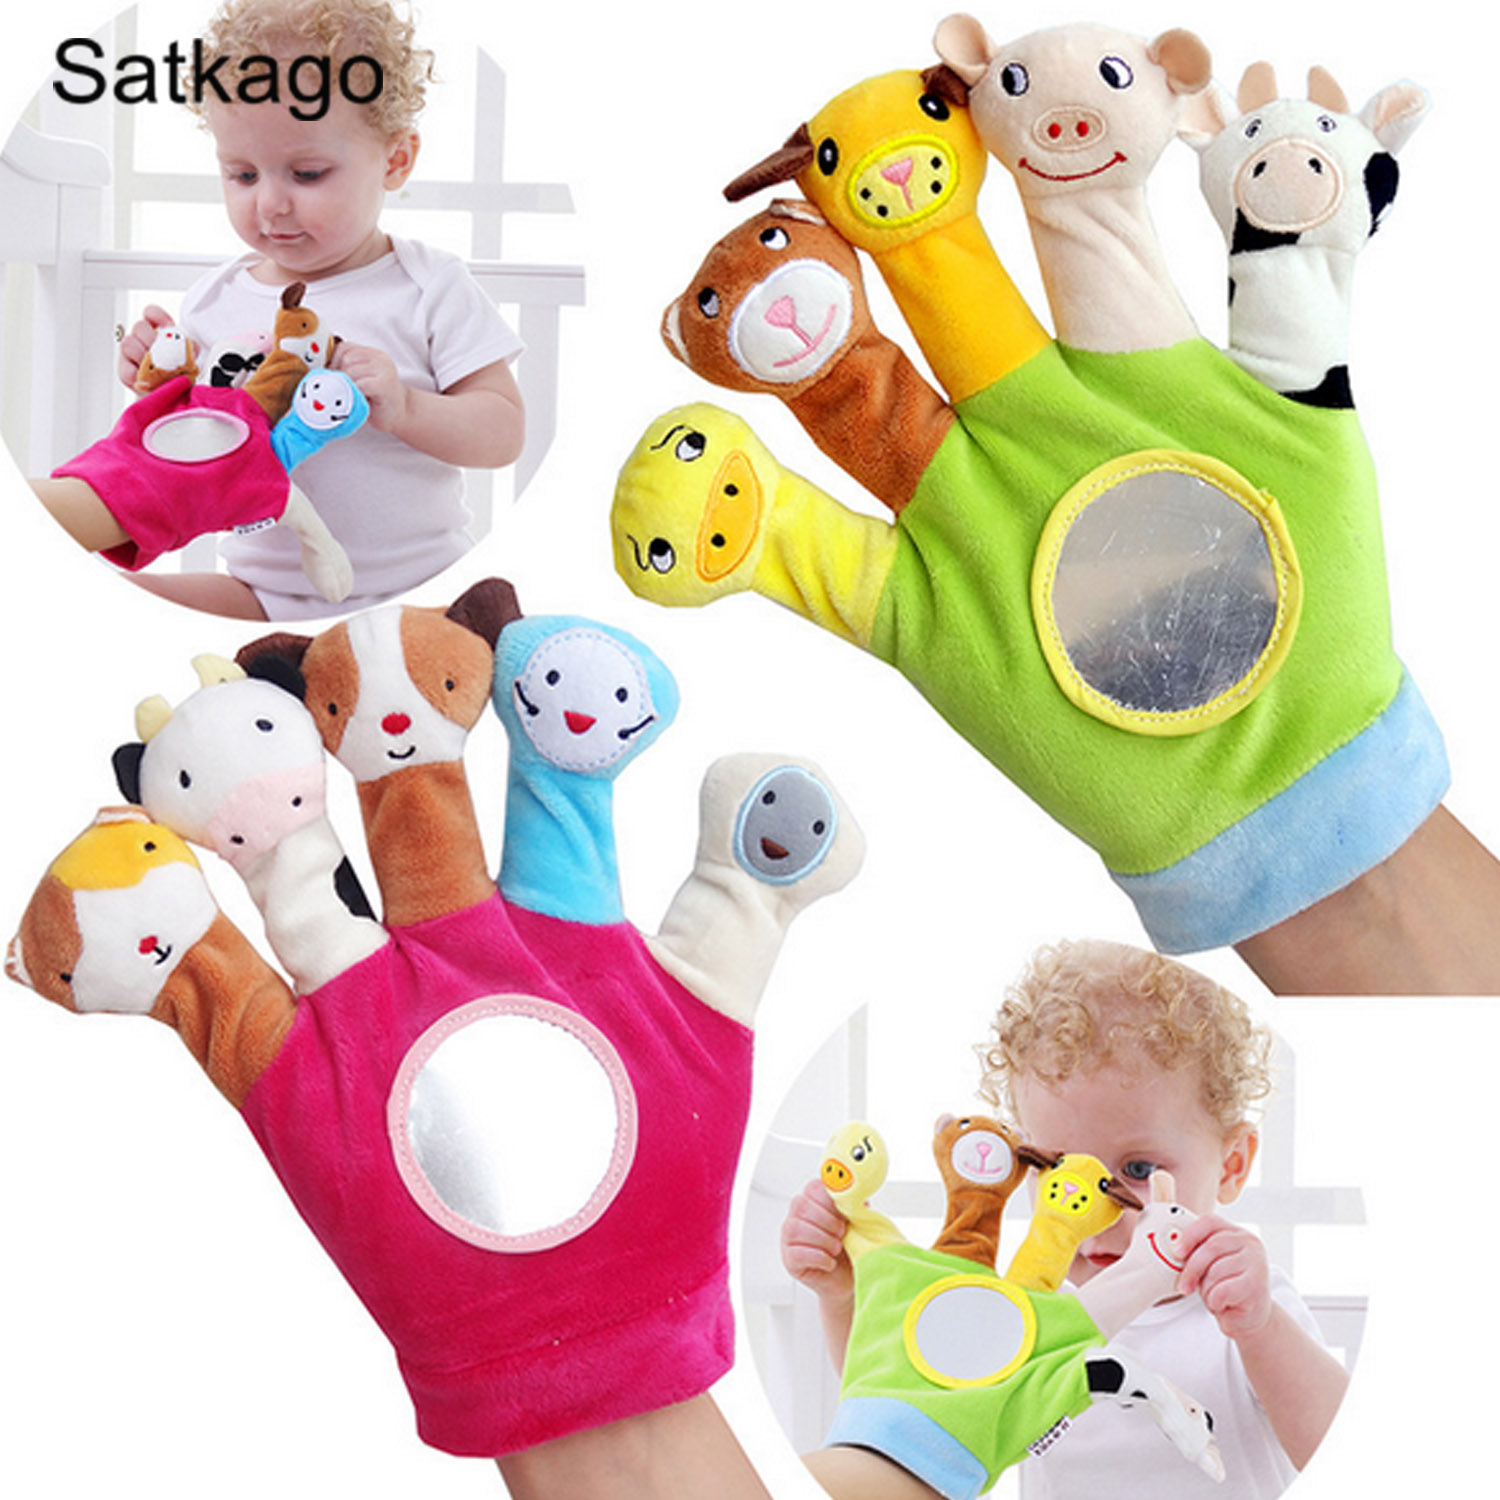 Glove Cartoon Animal Finger Plush Toys on Fingers Children Baby Doll Figures Dressed Character Kids Educational Hand Puppets Toy